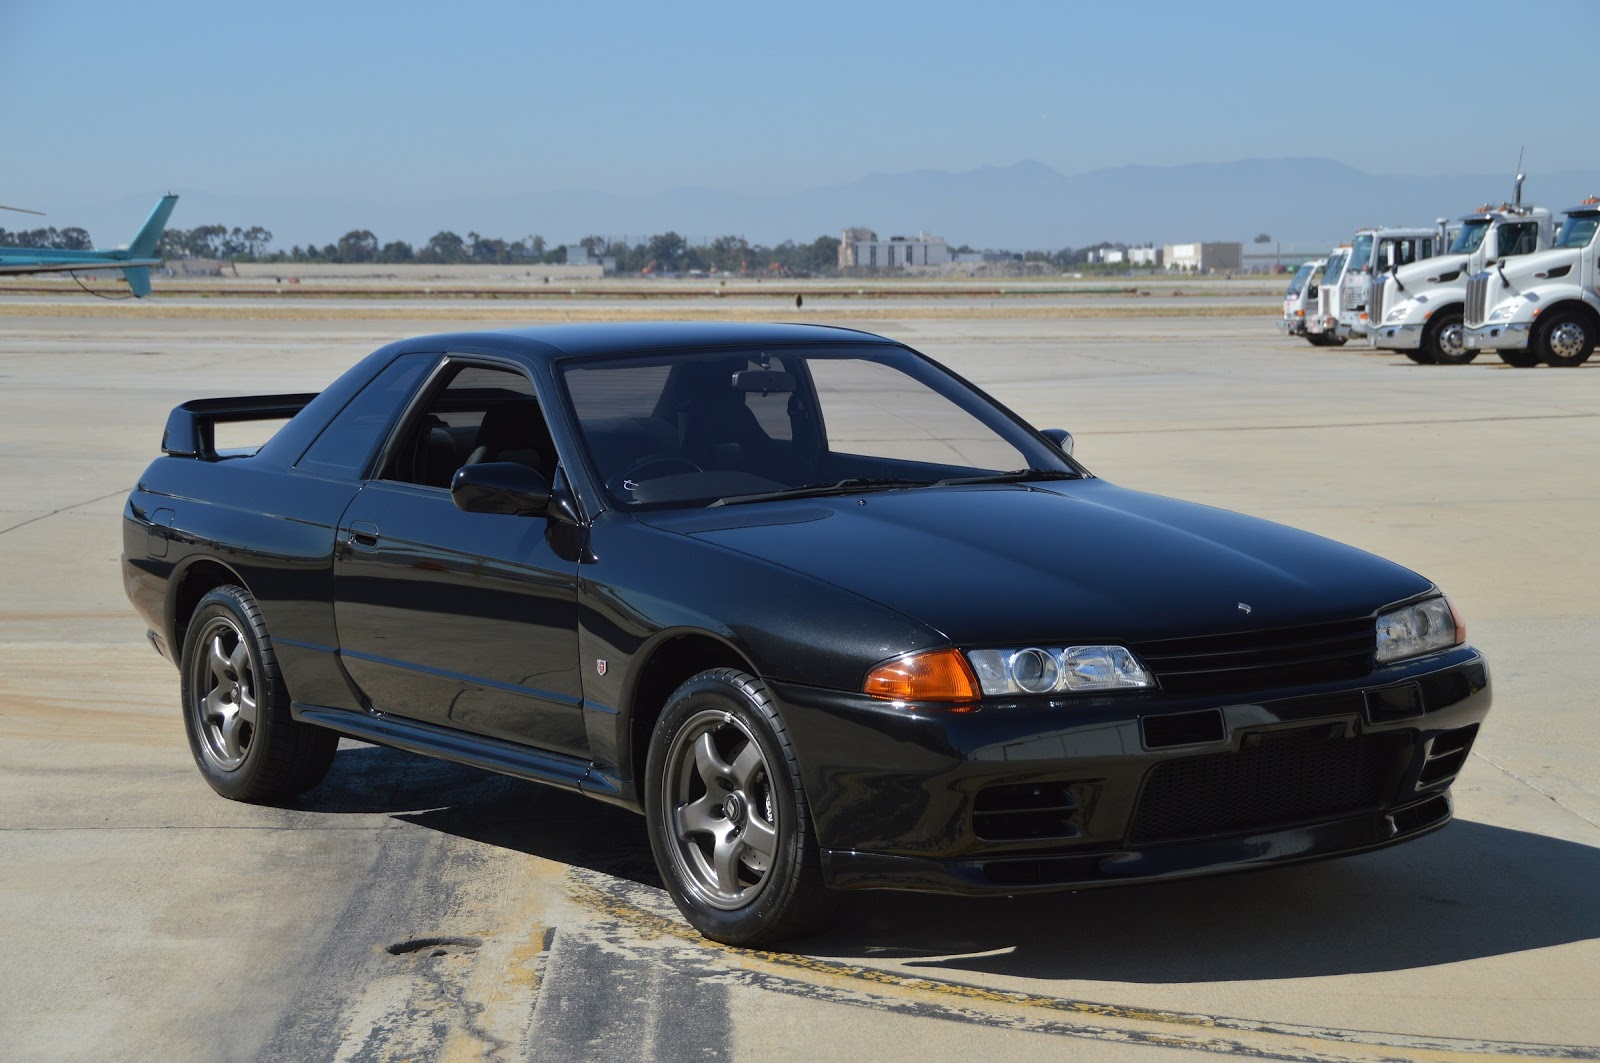 1990 nissan skyline gt r r32 for sale in long beach california only 24k miles nissan. Black Bedroom Furniture Sets. Home Design Ideas